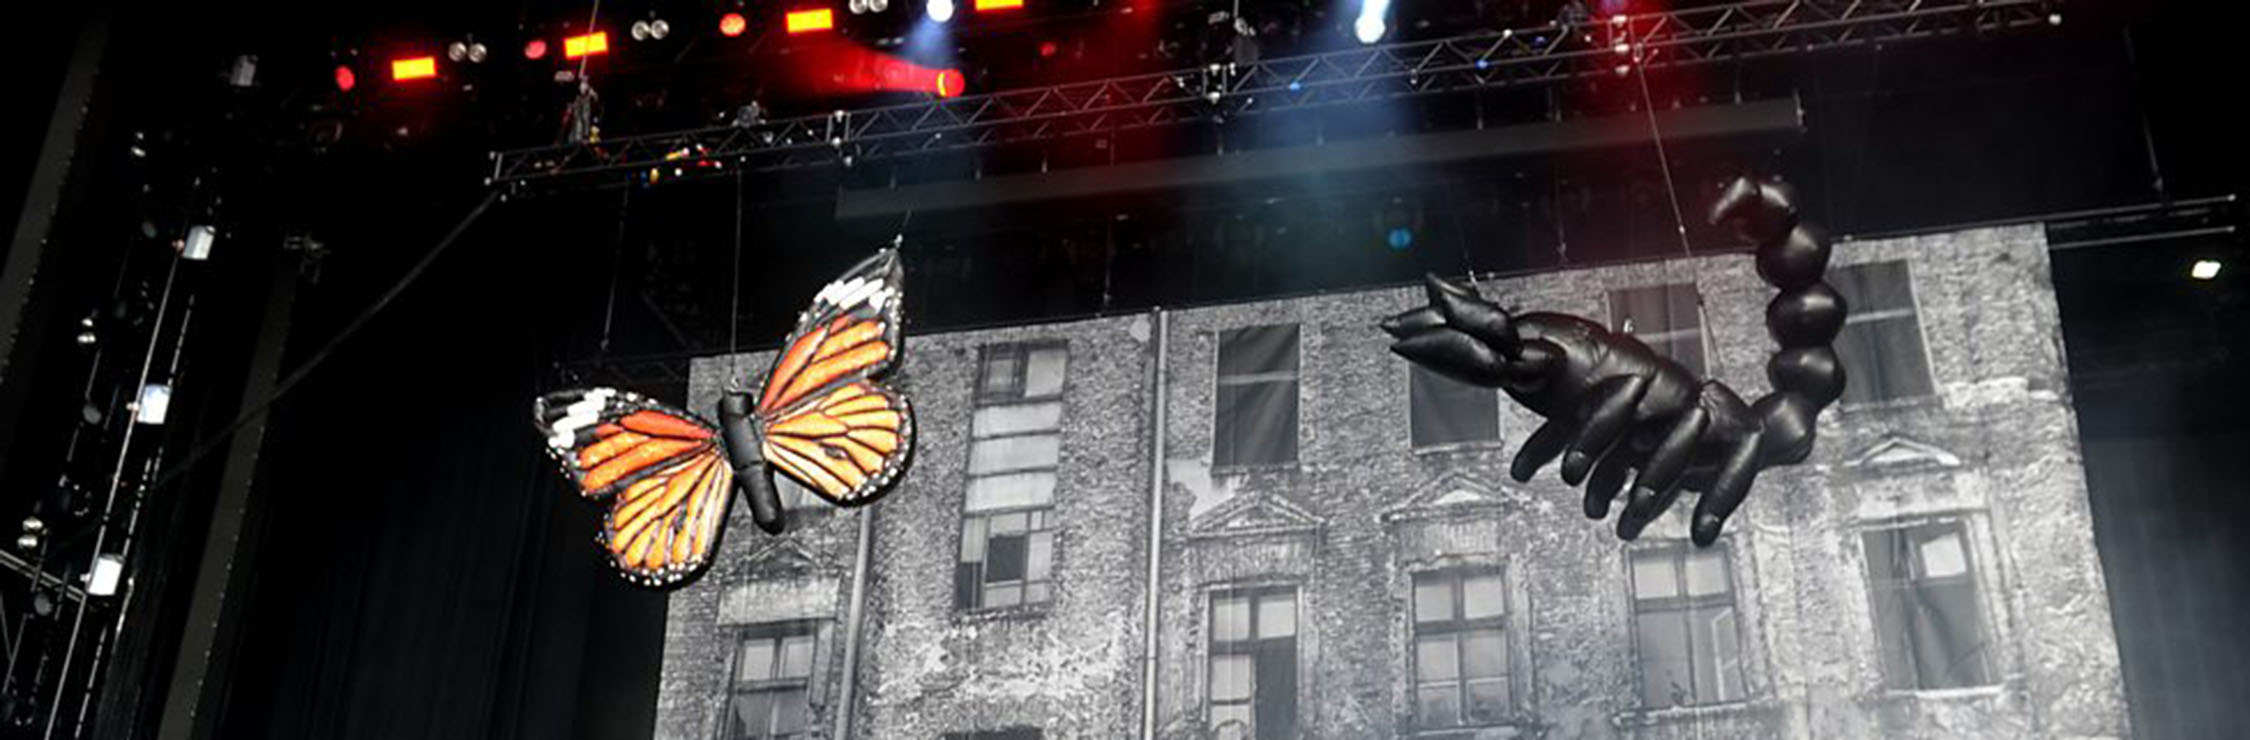 inflatable-props-hung-on-stage-top-bottom.jpg